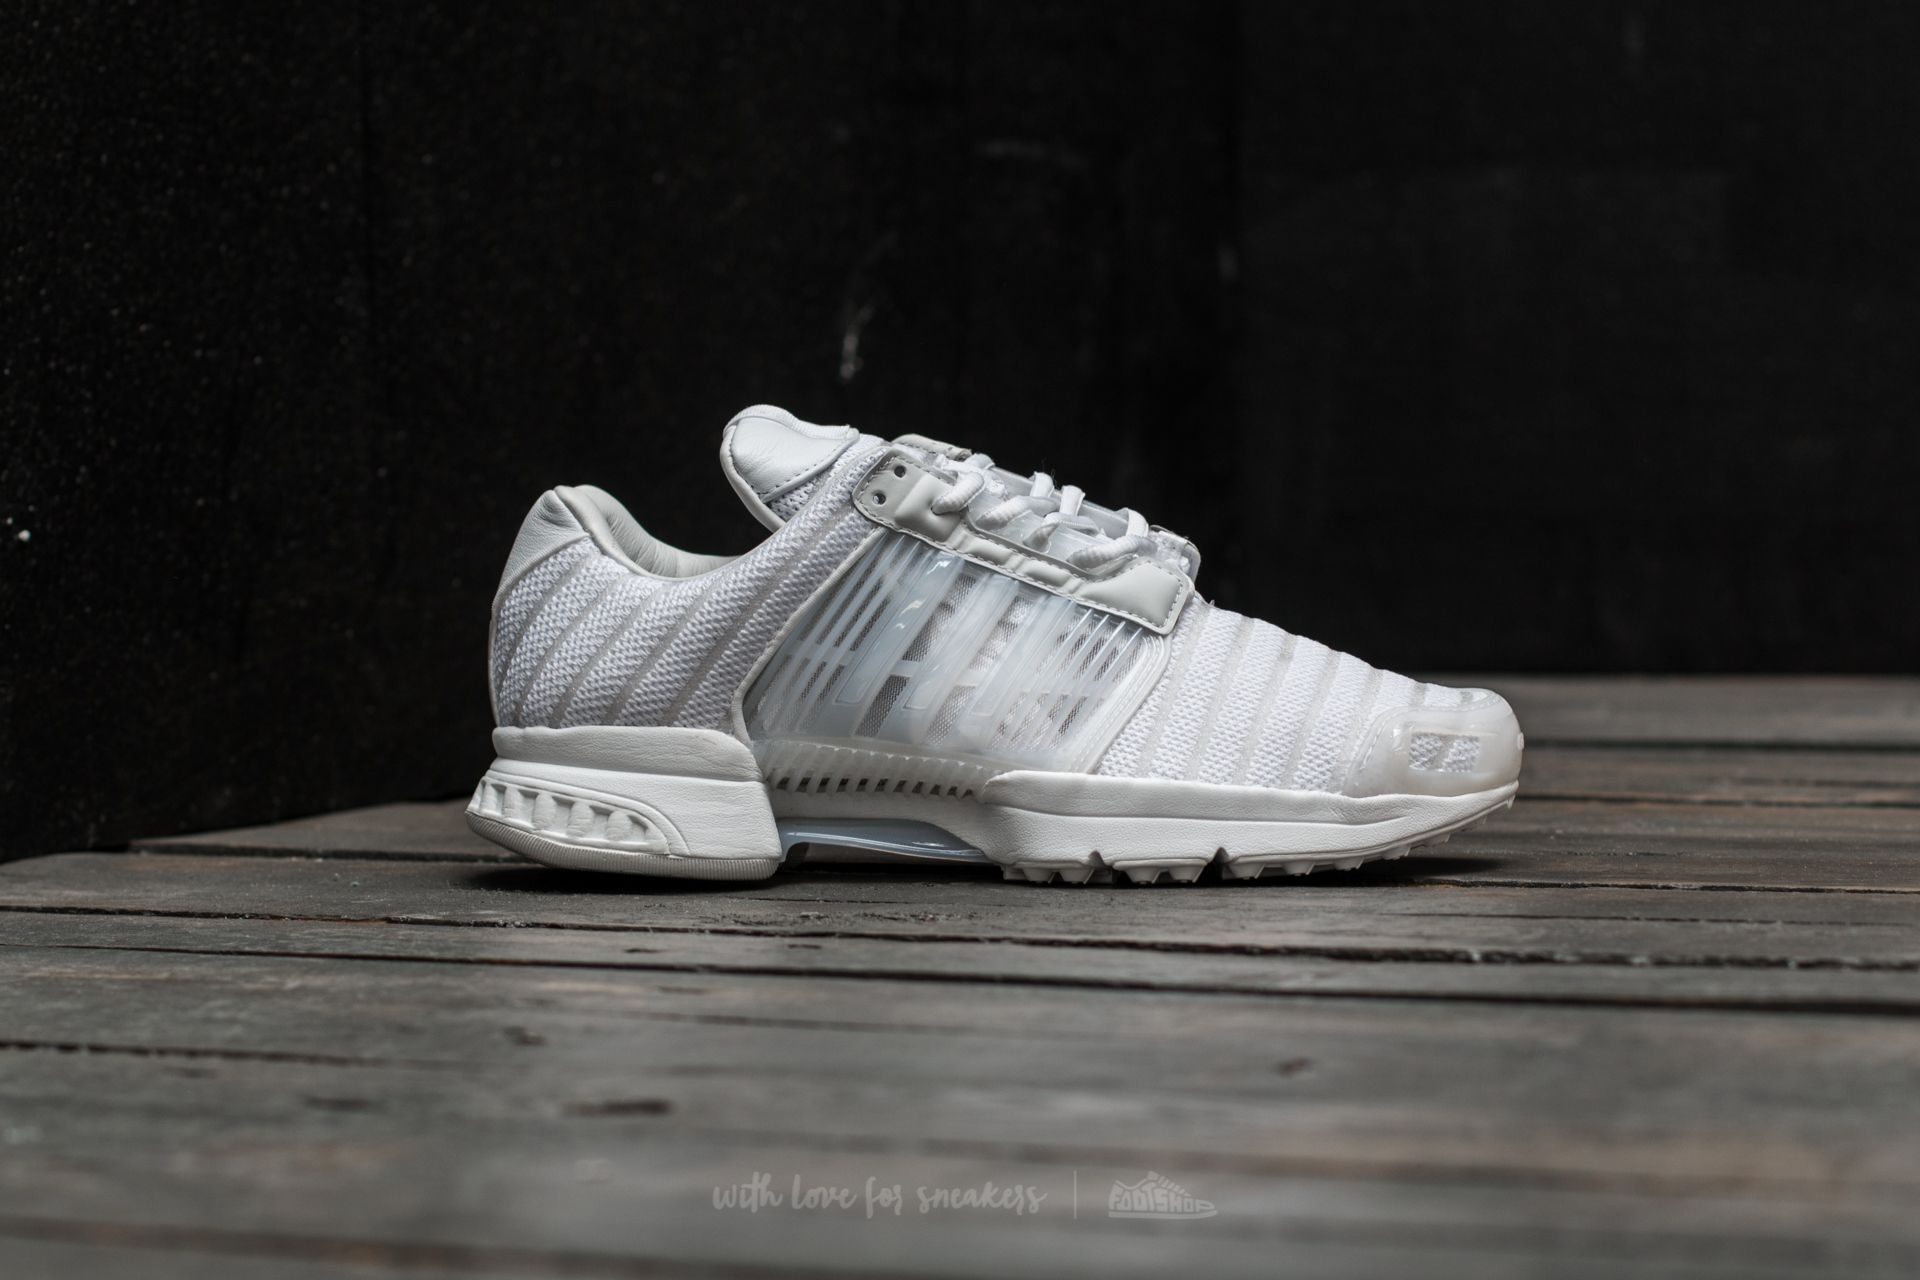 eFtw Wish 1 Sneakerboy X White Climacool Consortium Adidas S K1TclFJ3